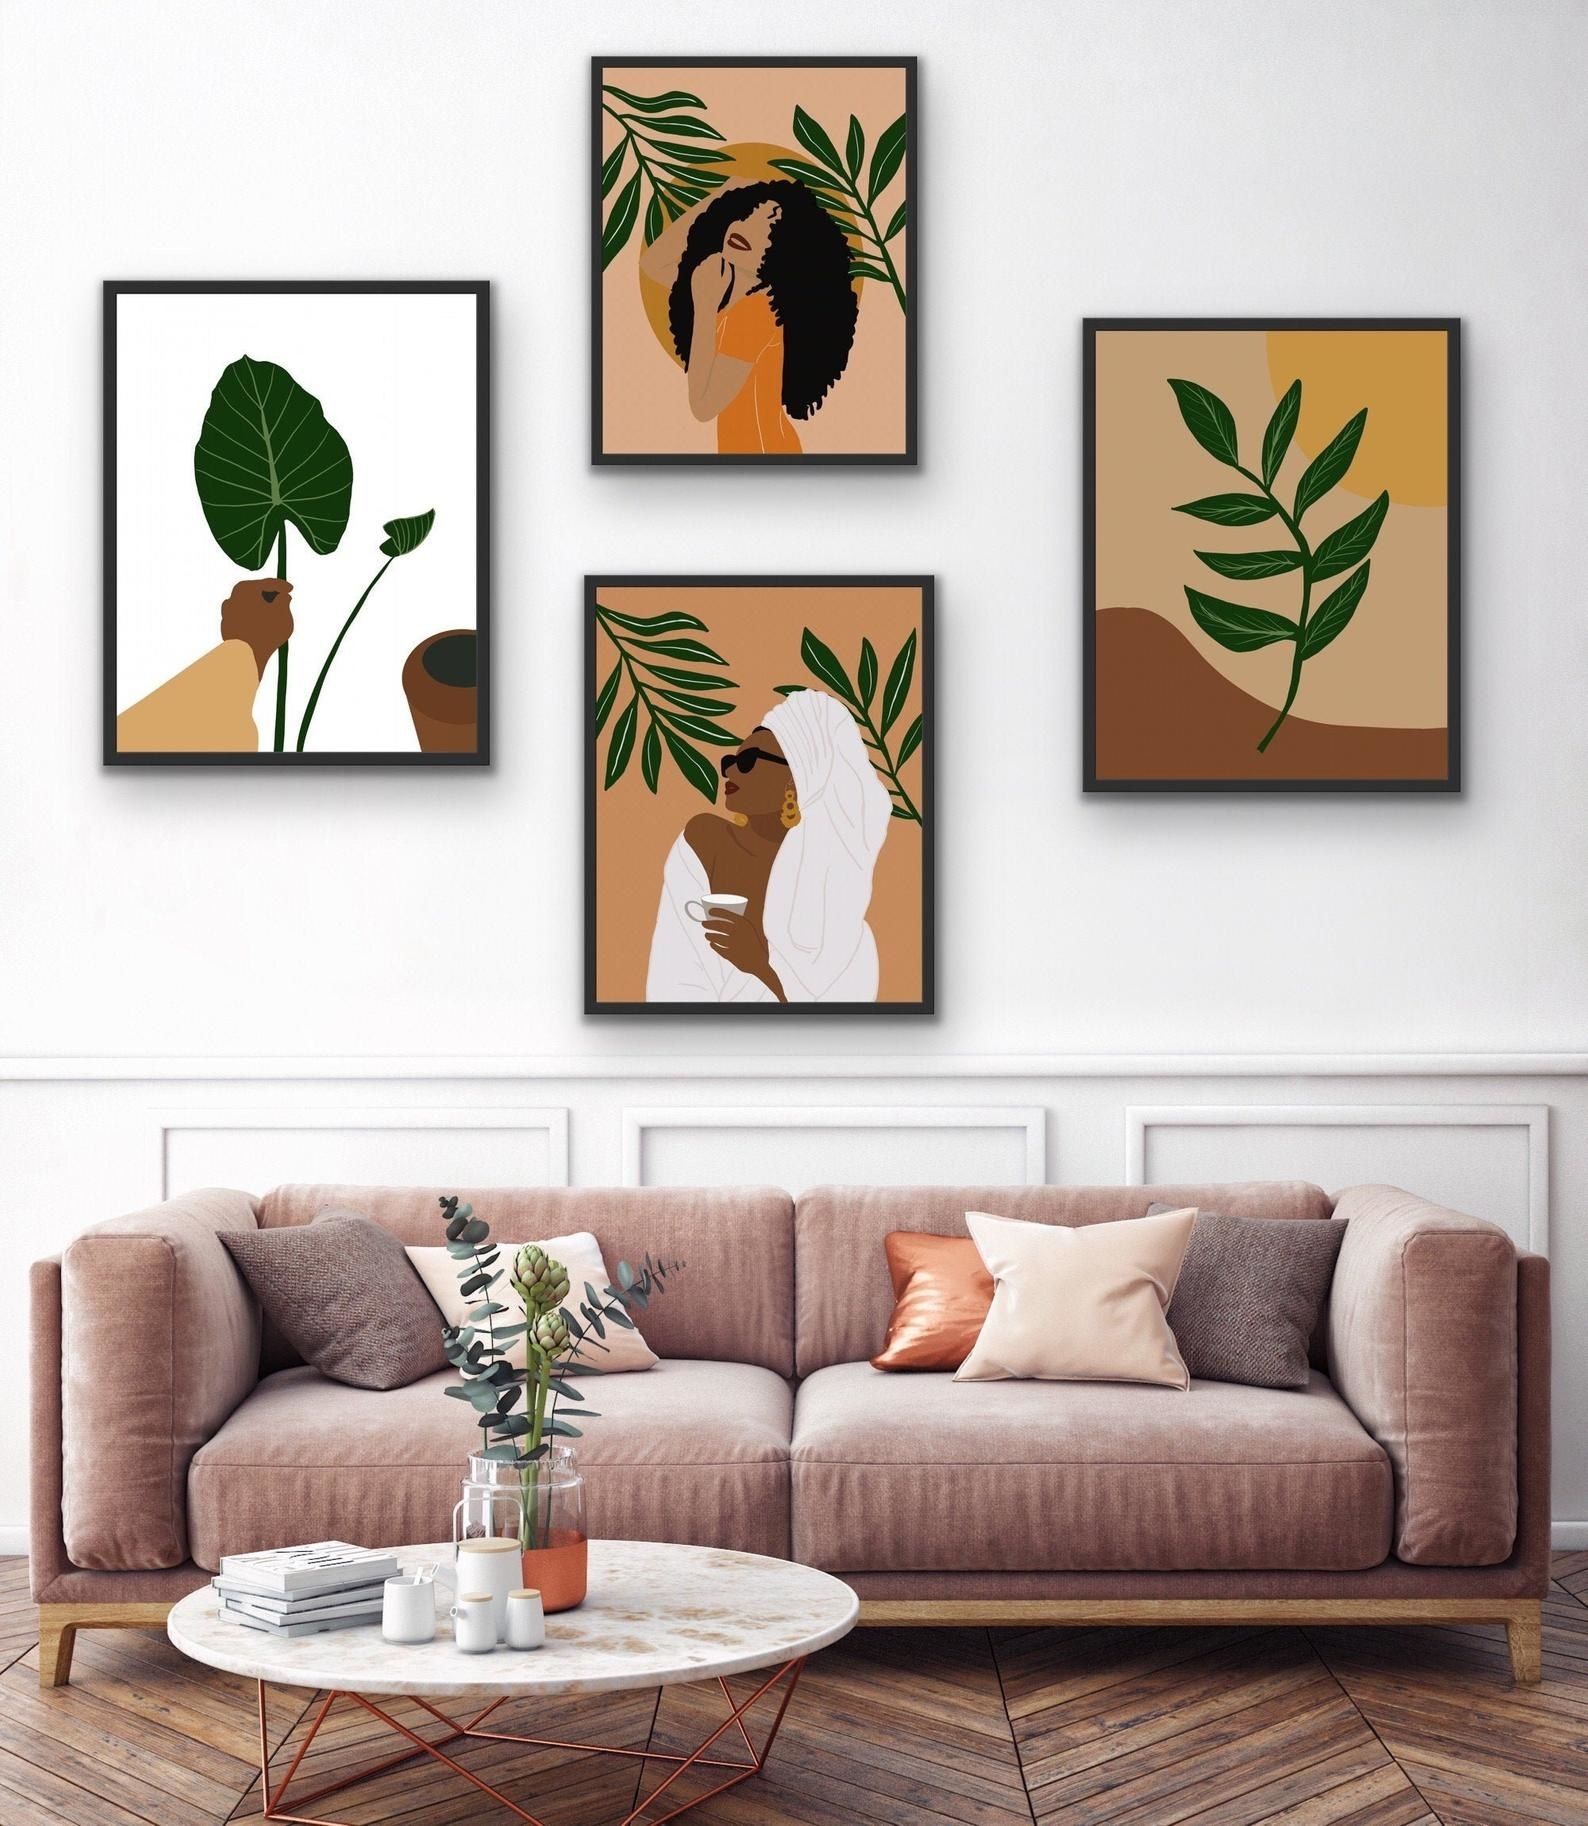 Four prints hanging over a couch